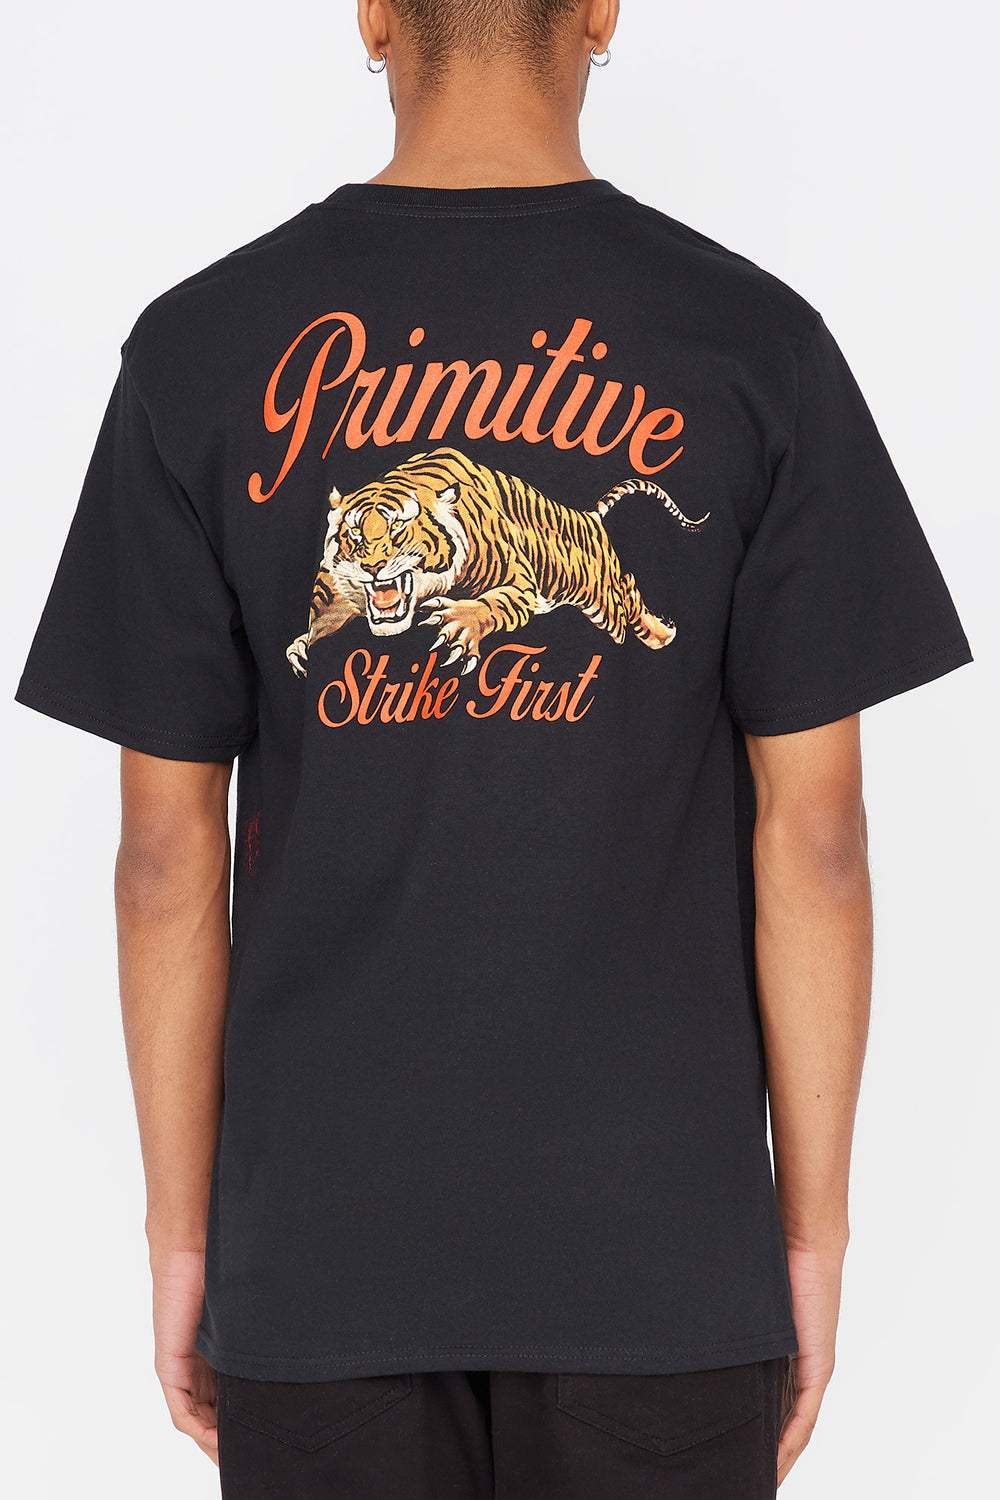 Primitive Untamed T-Shirt Black